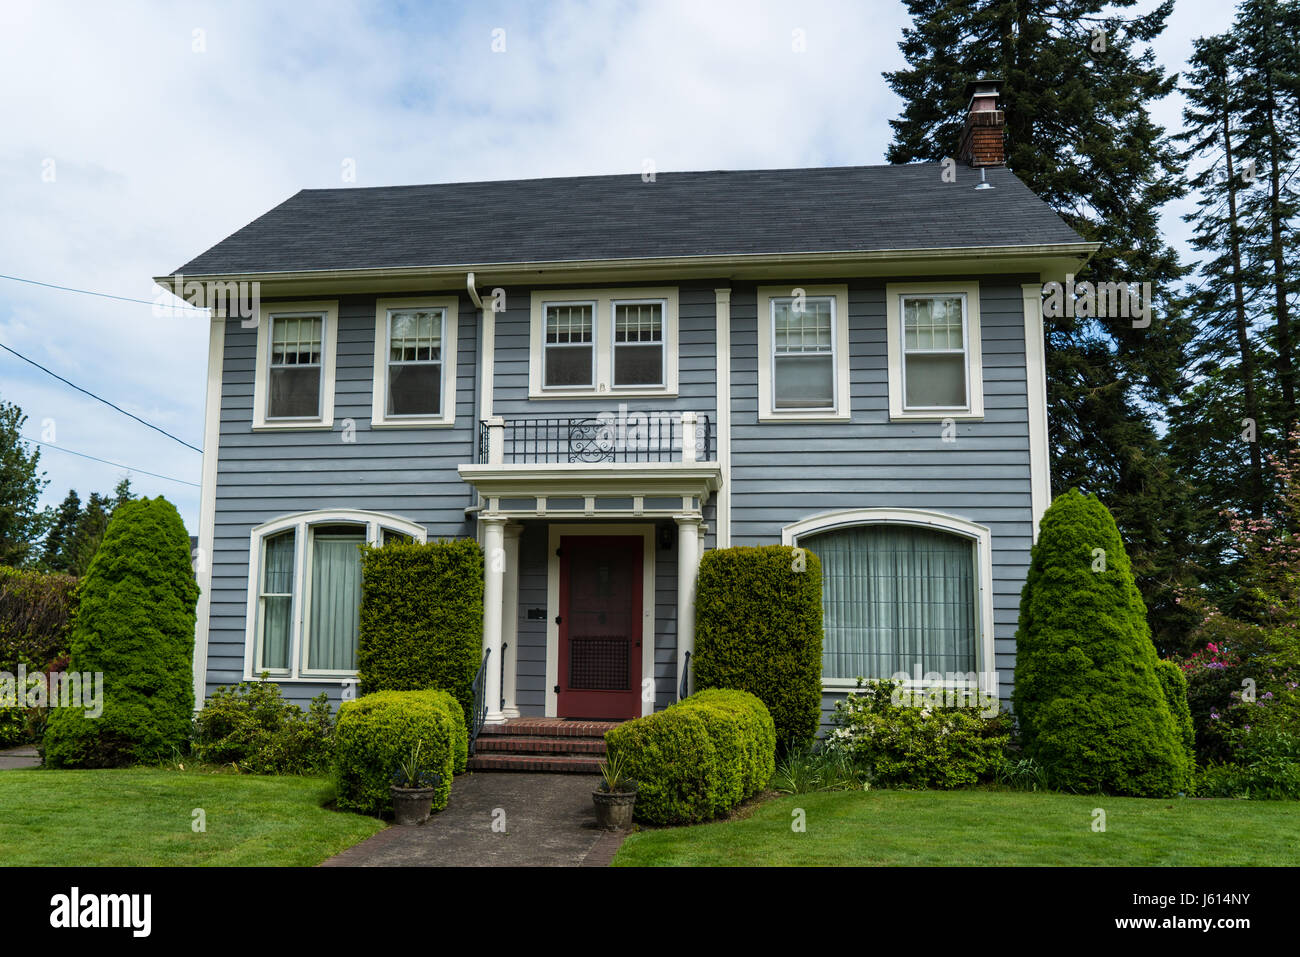 Classic american suburban house in stock photos classic for American classic house style